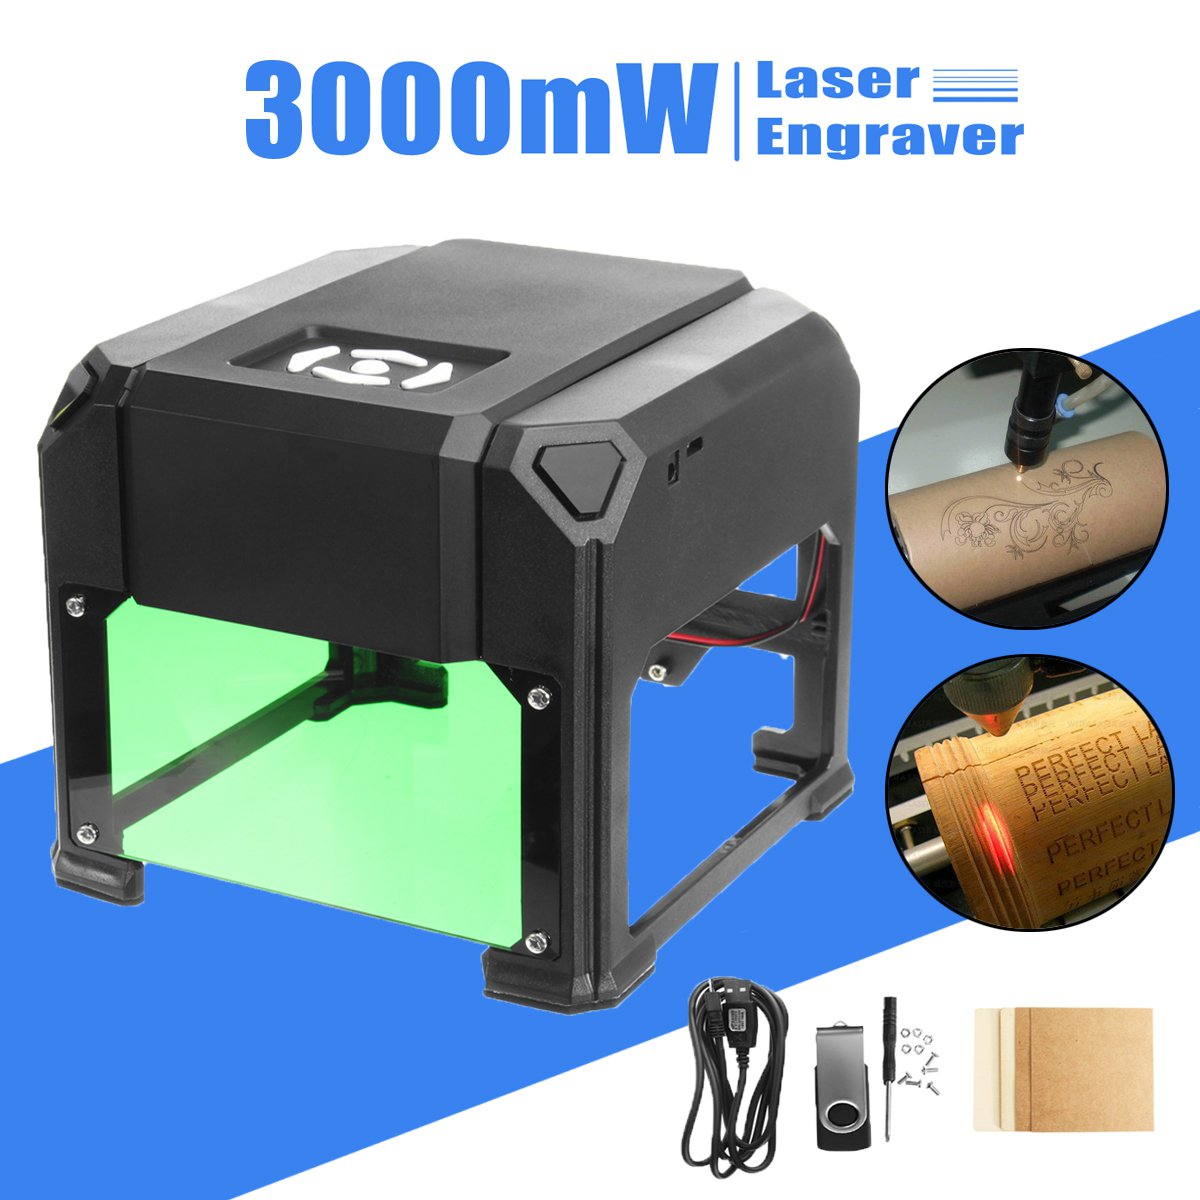 все цены на 3000mW Desktop Laser Engraver Machine USB DIY Logo Mark Printer Cutter CNC Laser Carving Machine 80x80mm Engraving Range онлайн